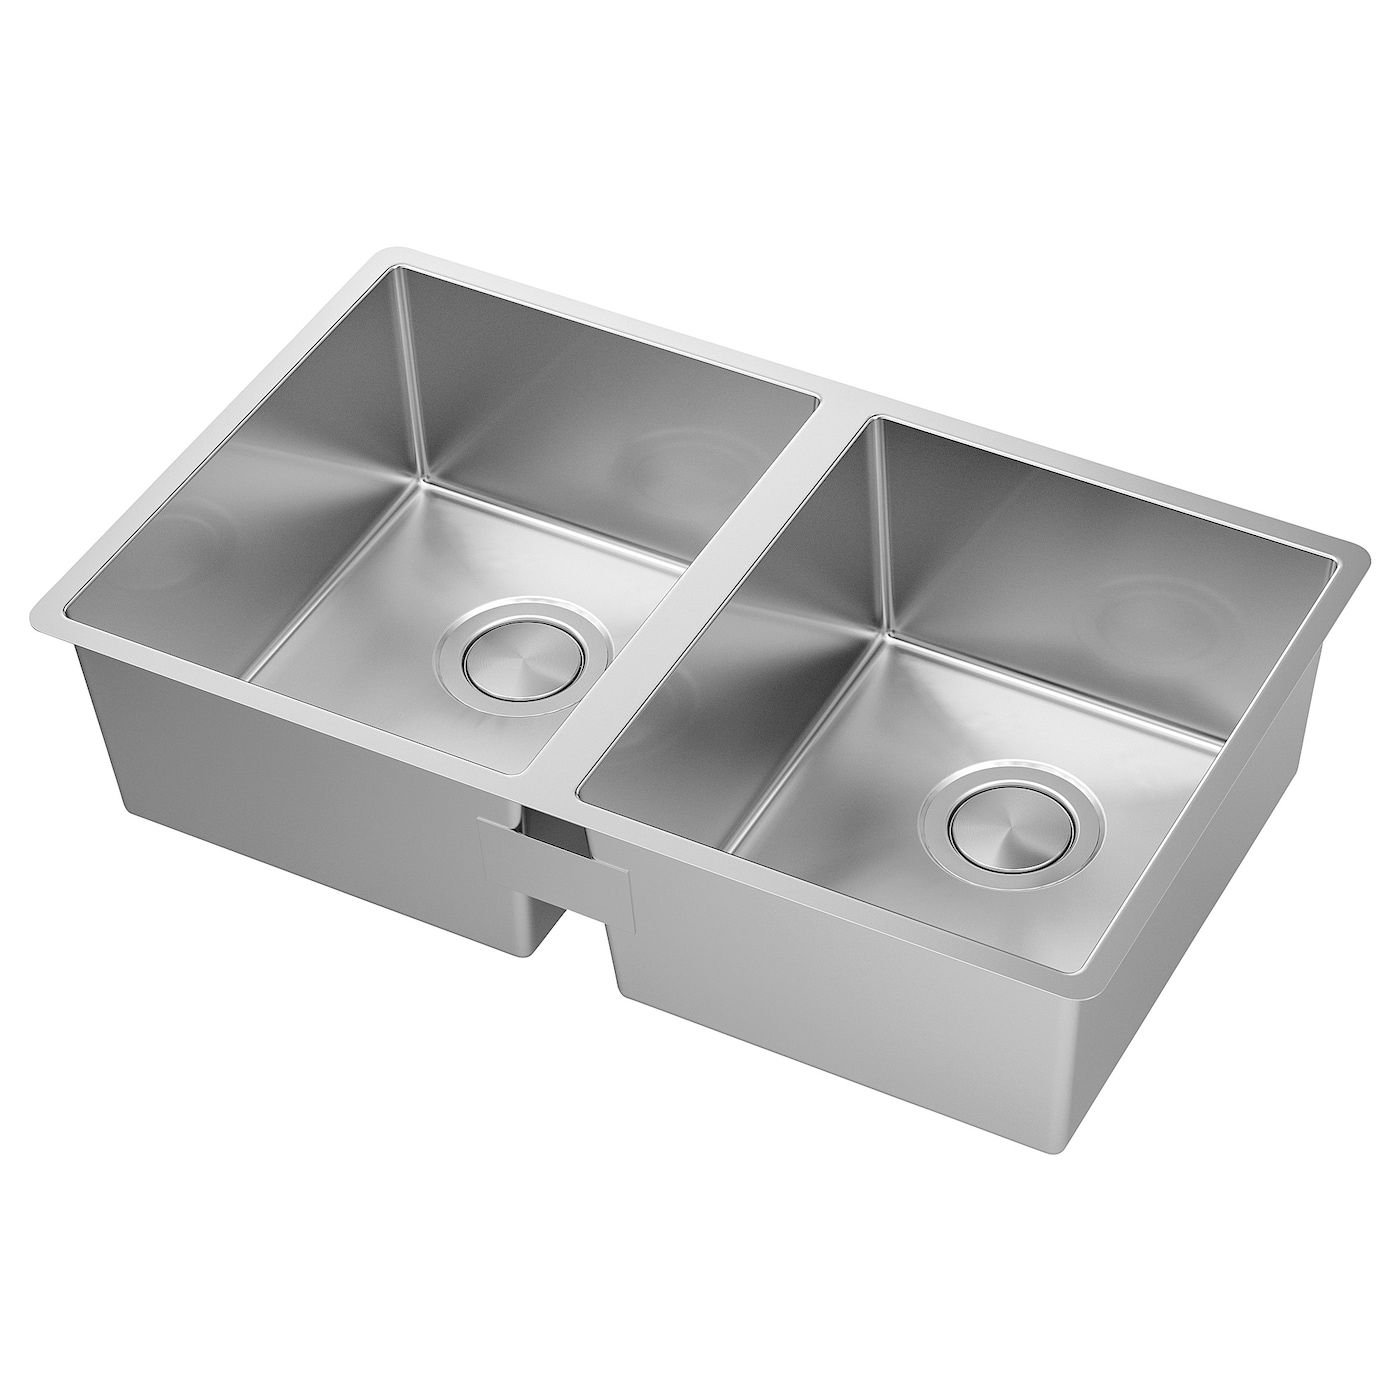 Norrsjon Double Bowl Dual Mount Sink Stainless Steel 28 3 4x17 3